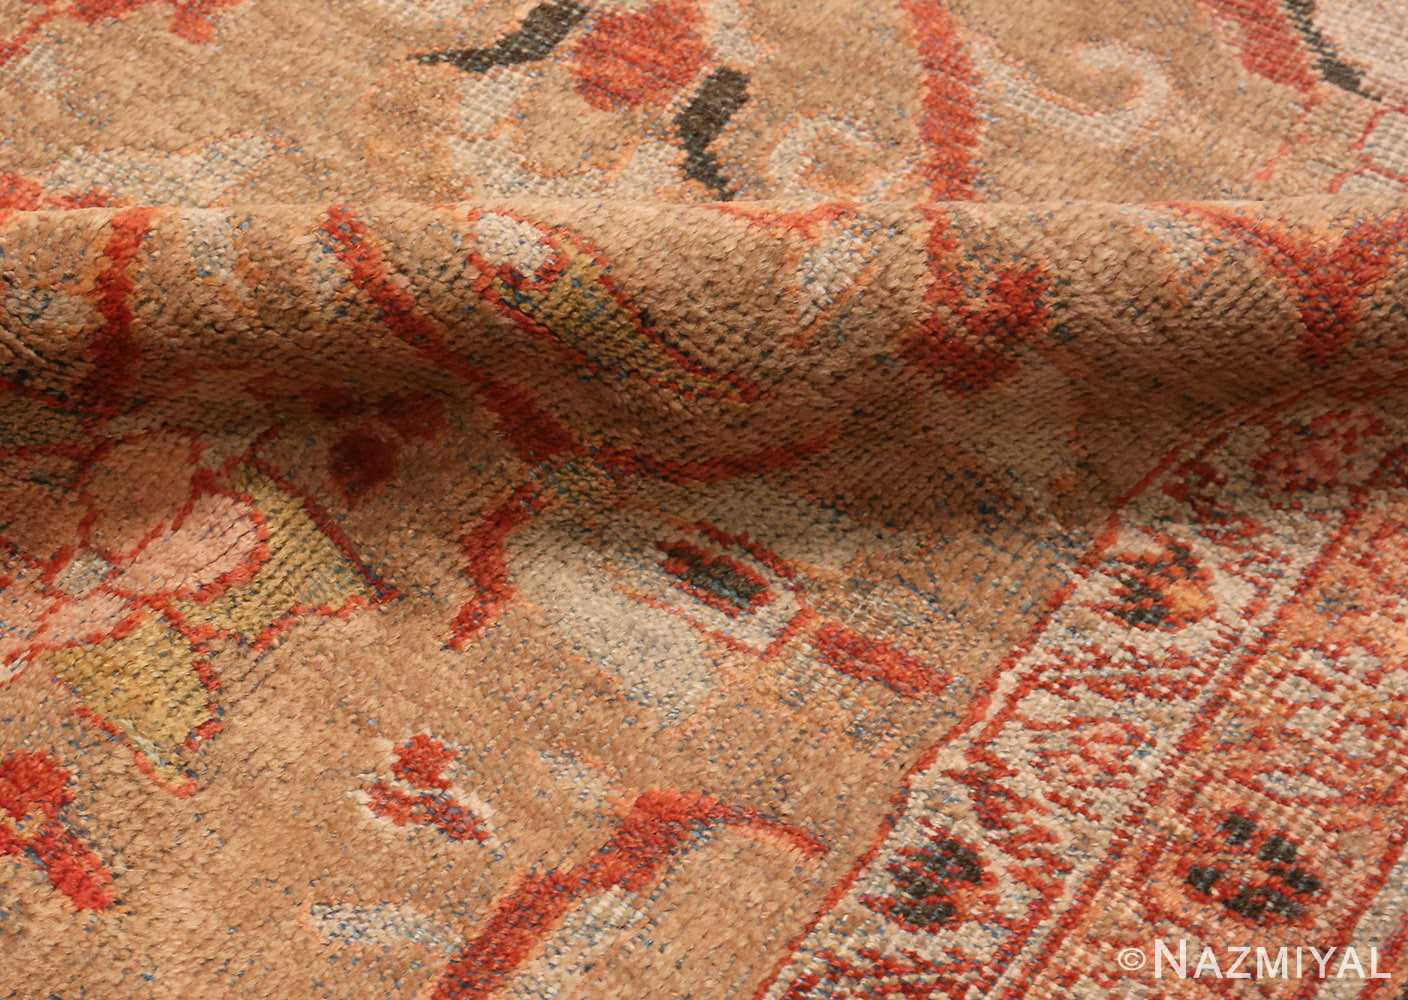 Picture of the wool The Pile Of Antique Persian Sultanabad Rug #48944 from Nazmiyal Antique Rugs in NYC